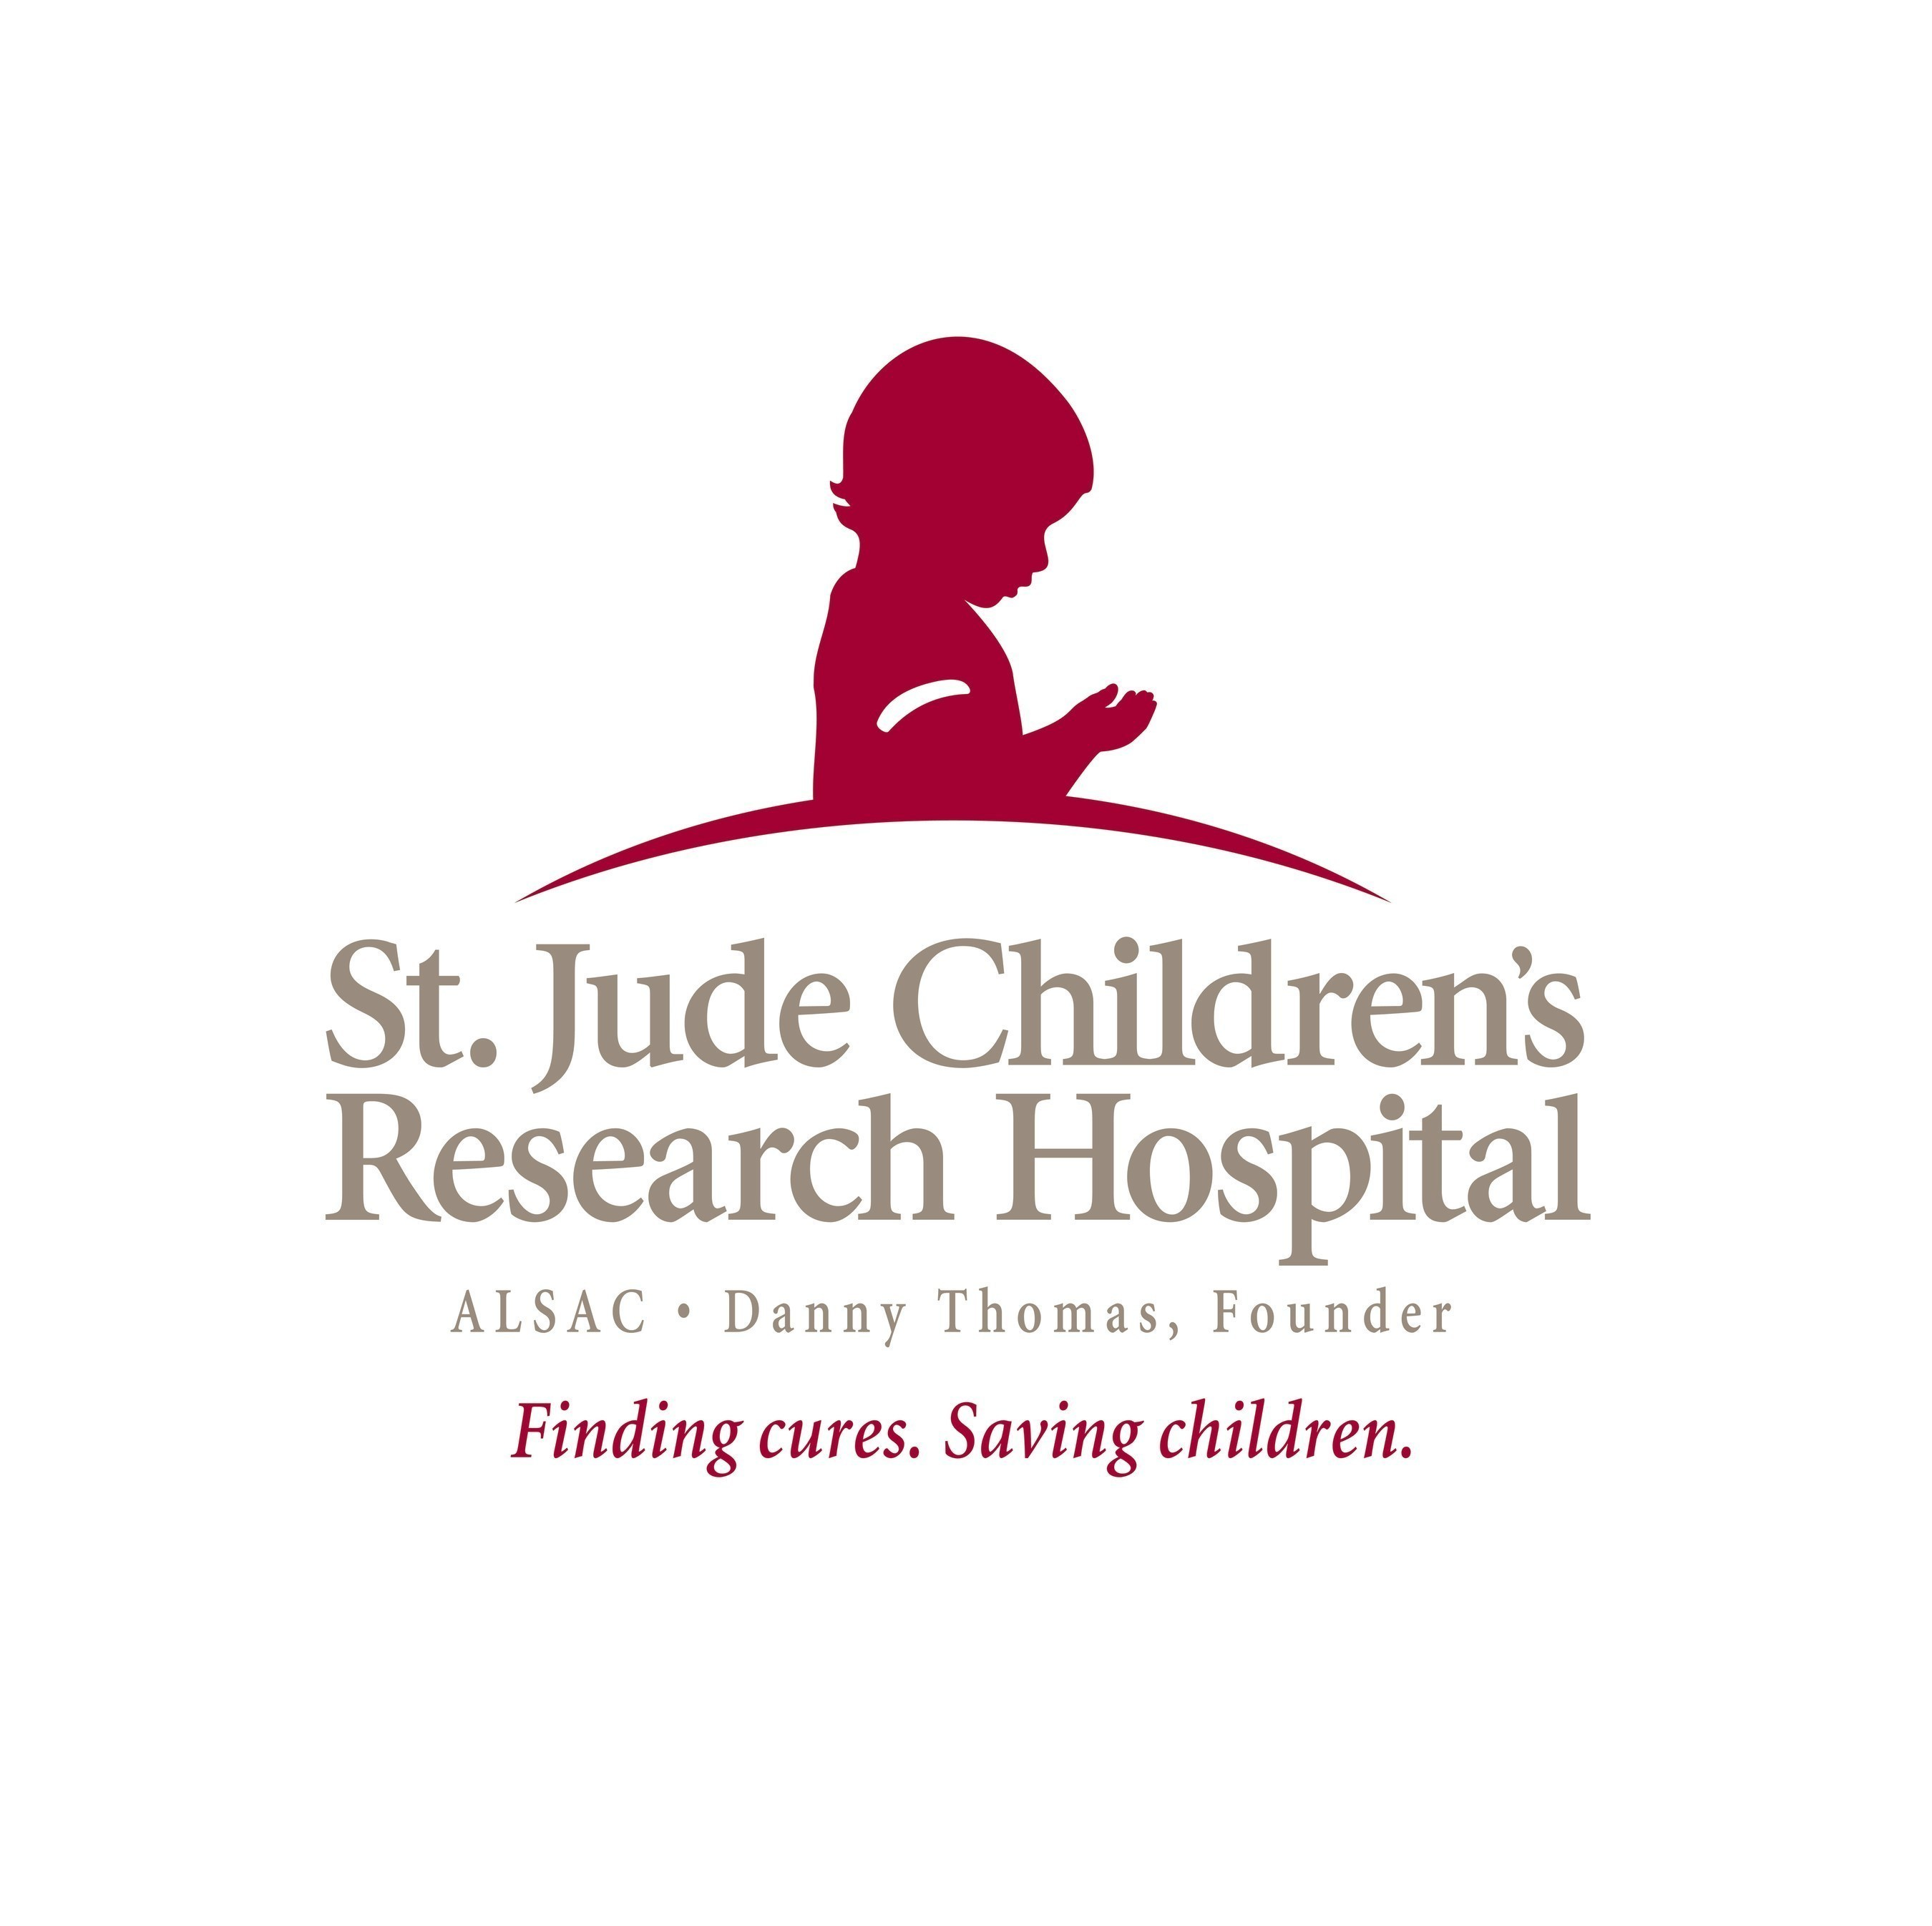 Gospel, urban music communities harmonize for a good cause during 9th annual Radio Cares for St. Jude Kids' program